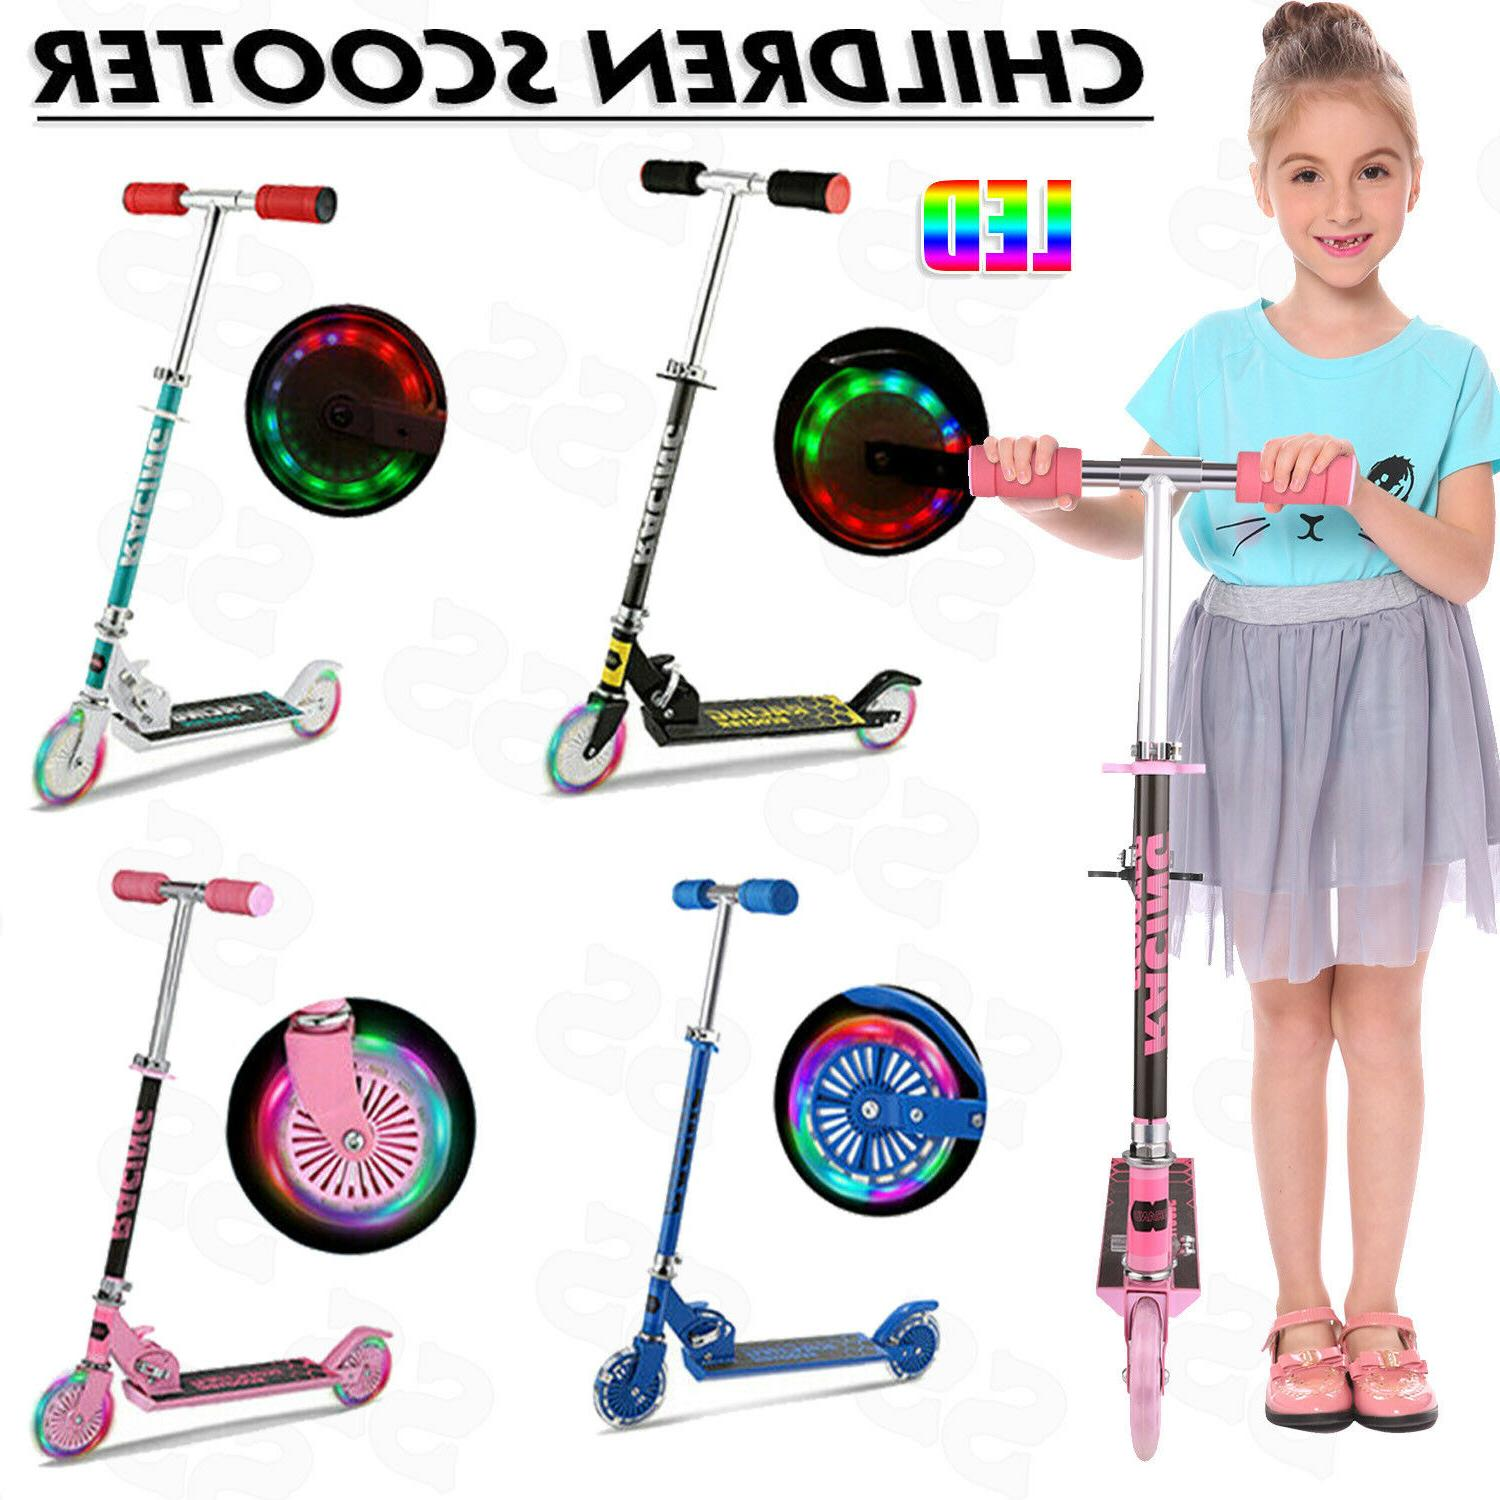 ANCHEER Kick Scooter for Kids Deluxe Aluminum 2 Wheels Glide